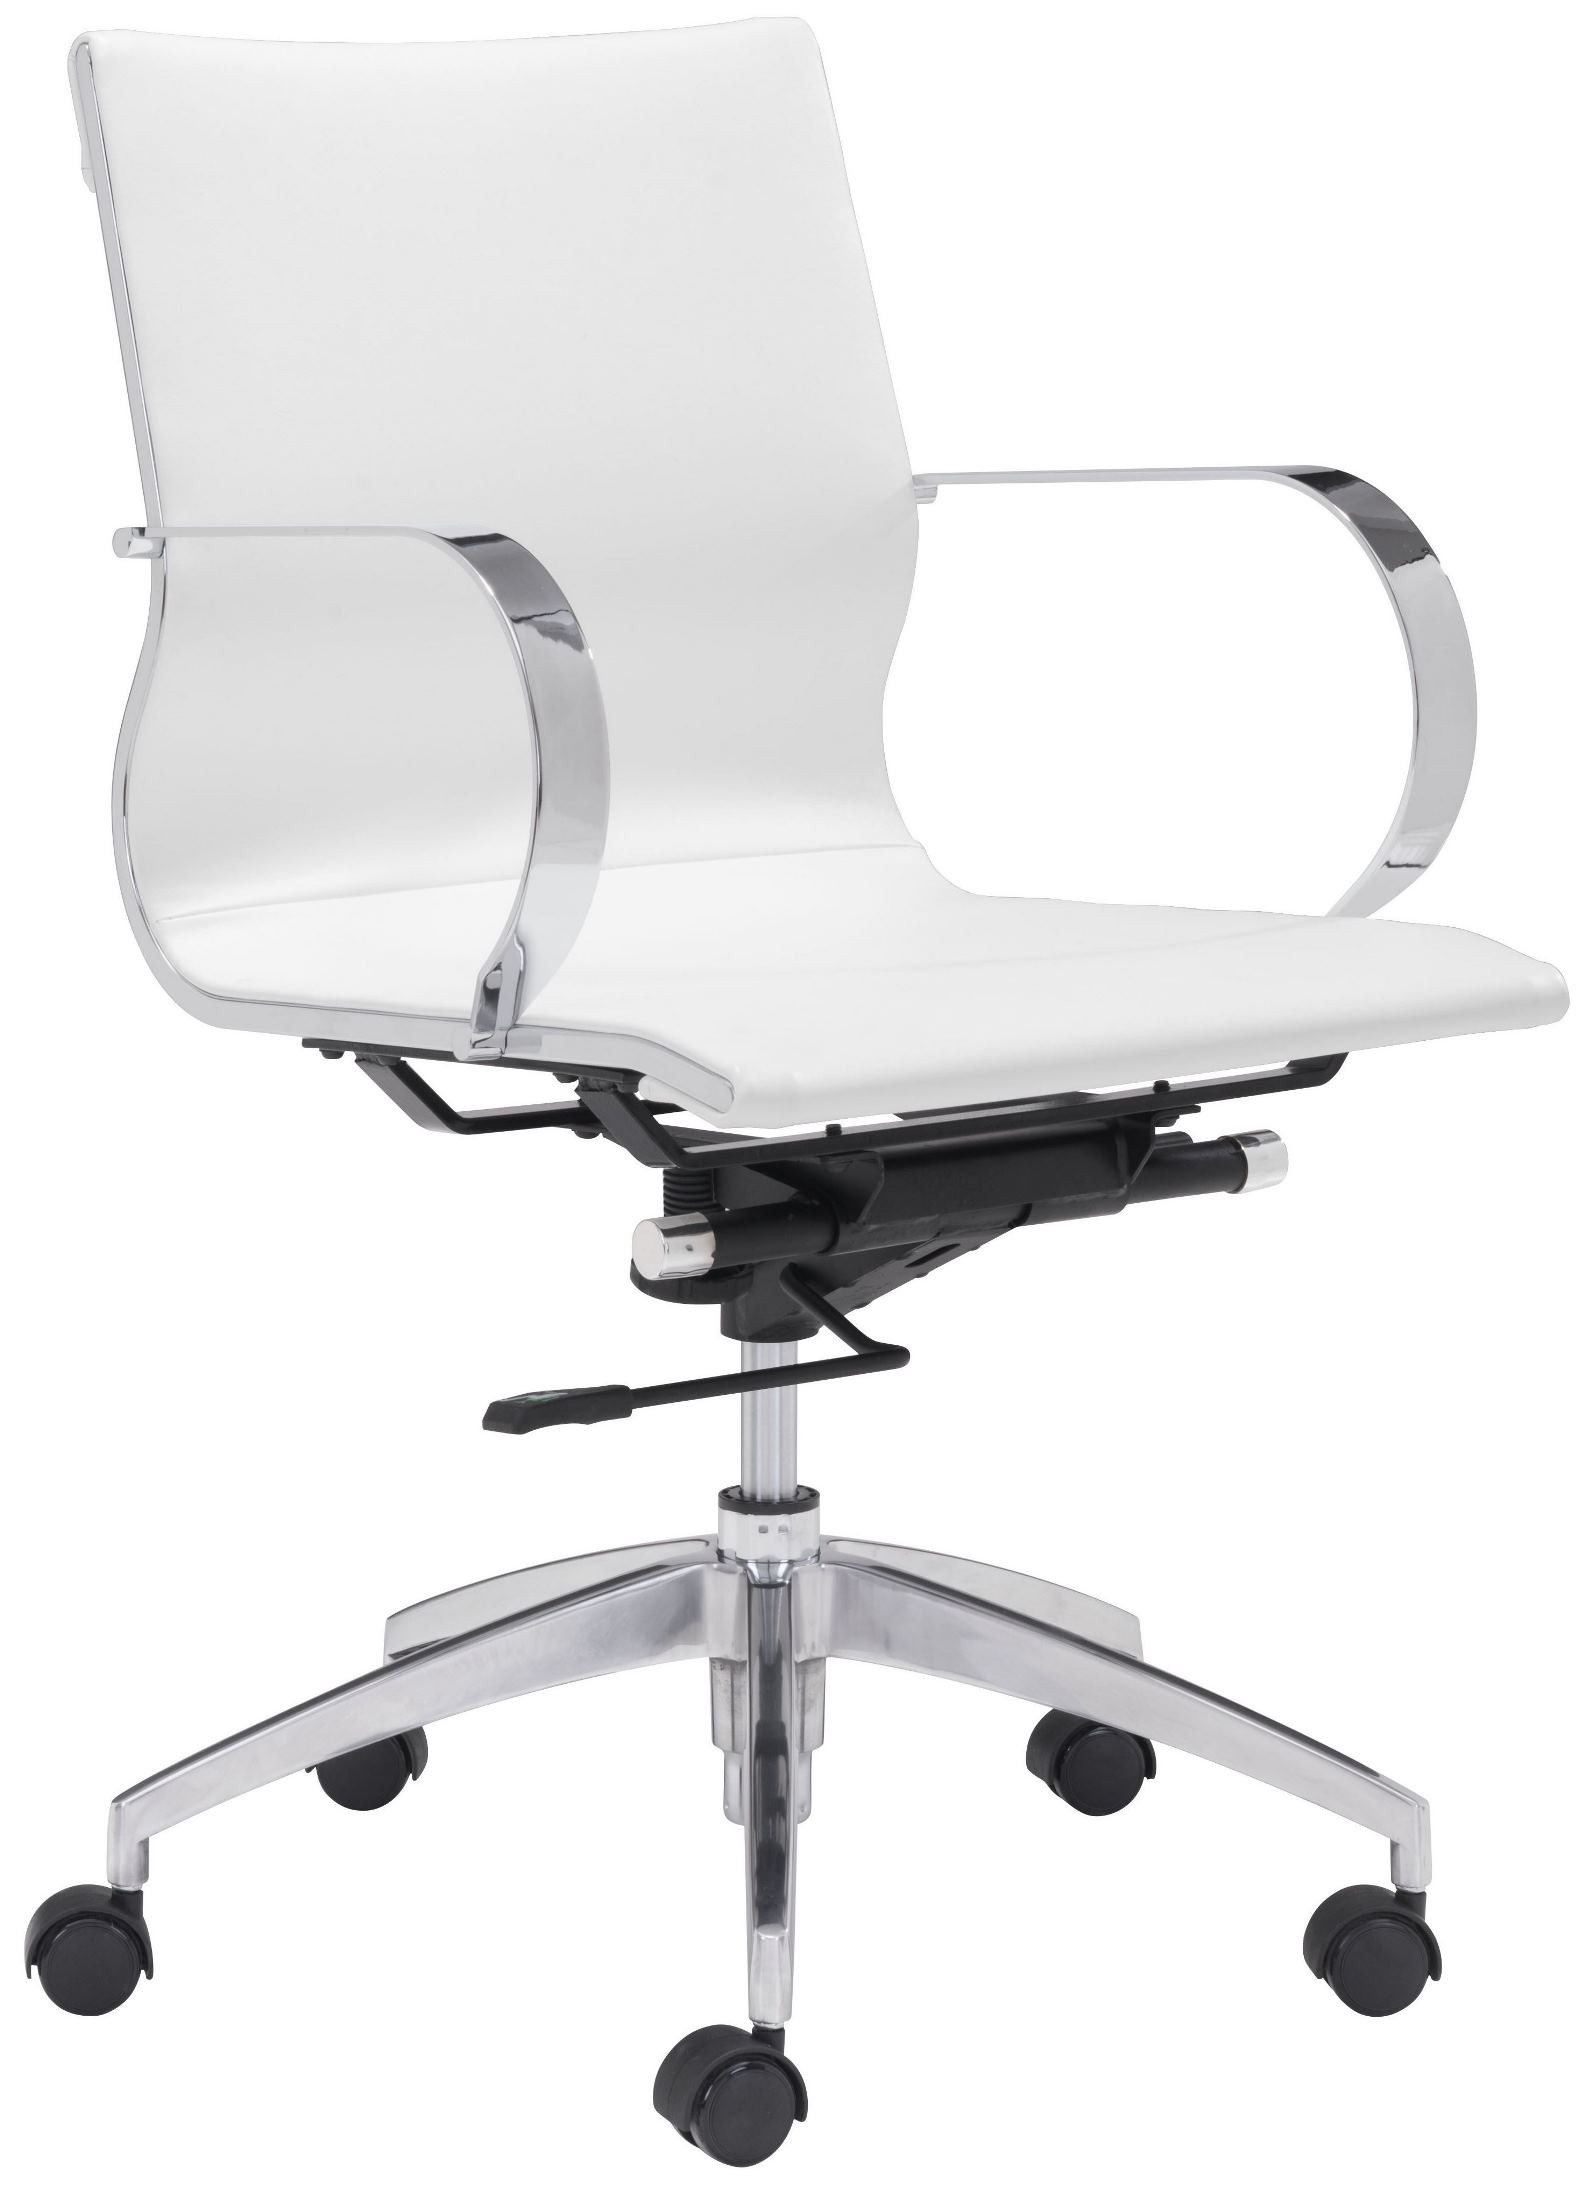 Lower Back Support For Office Chair Glider White Low Back Office Chair From Zuo Mod 100375